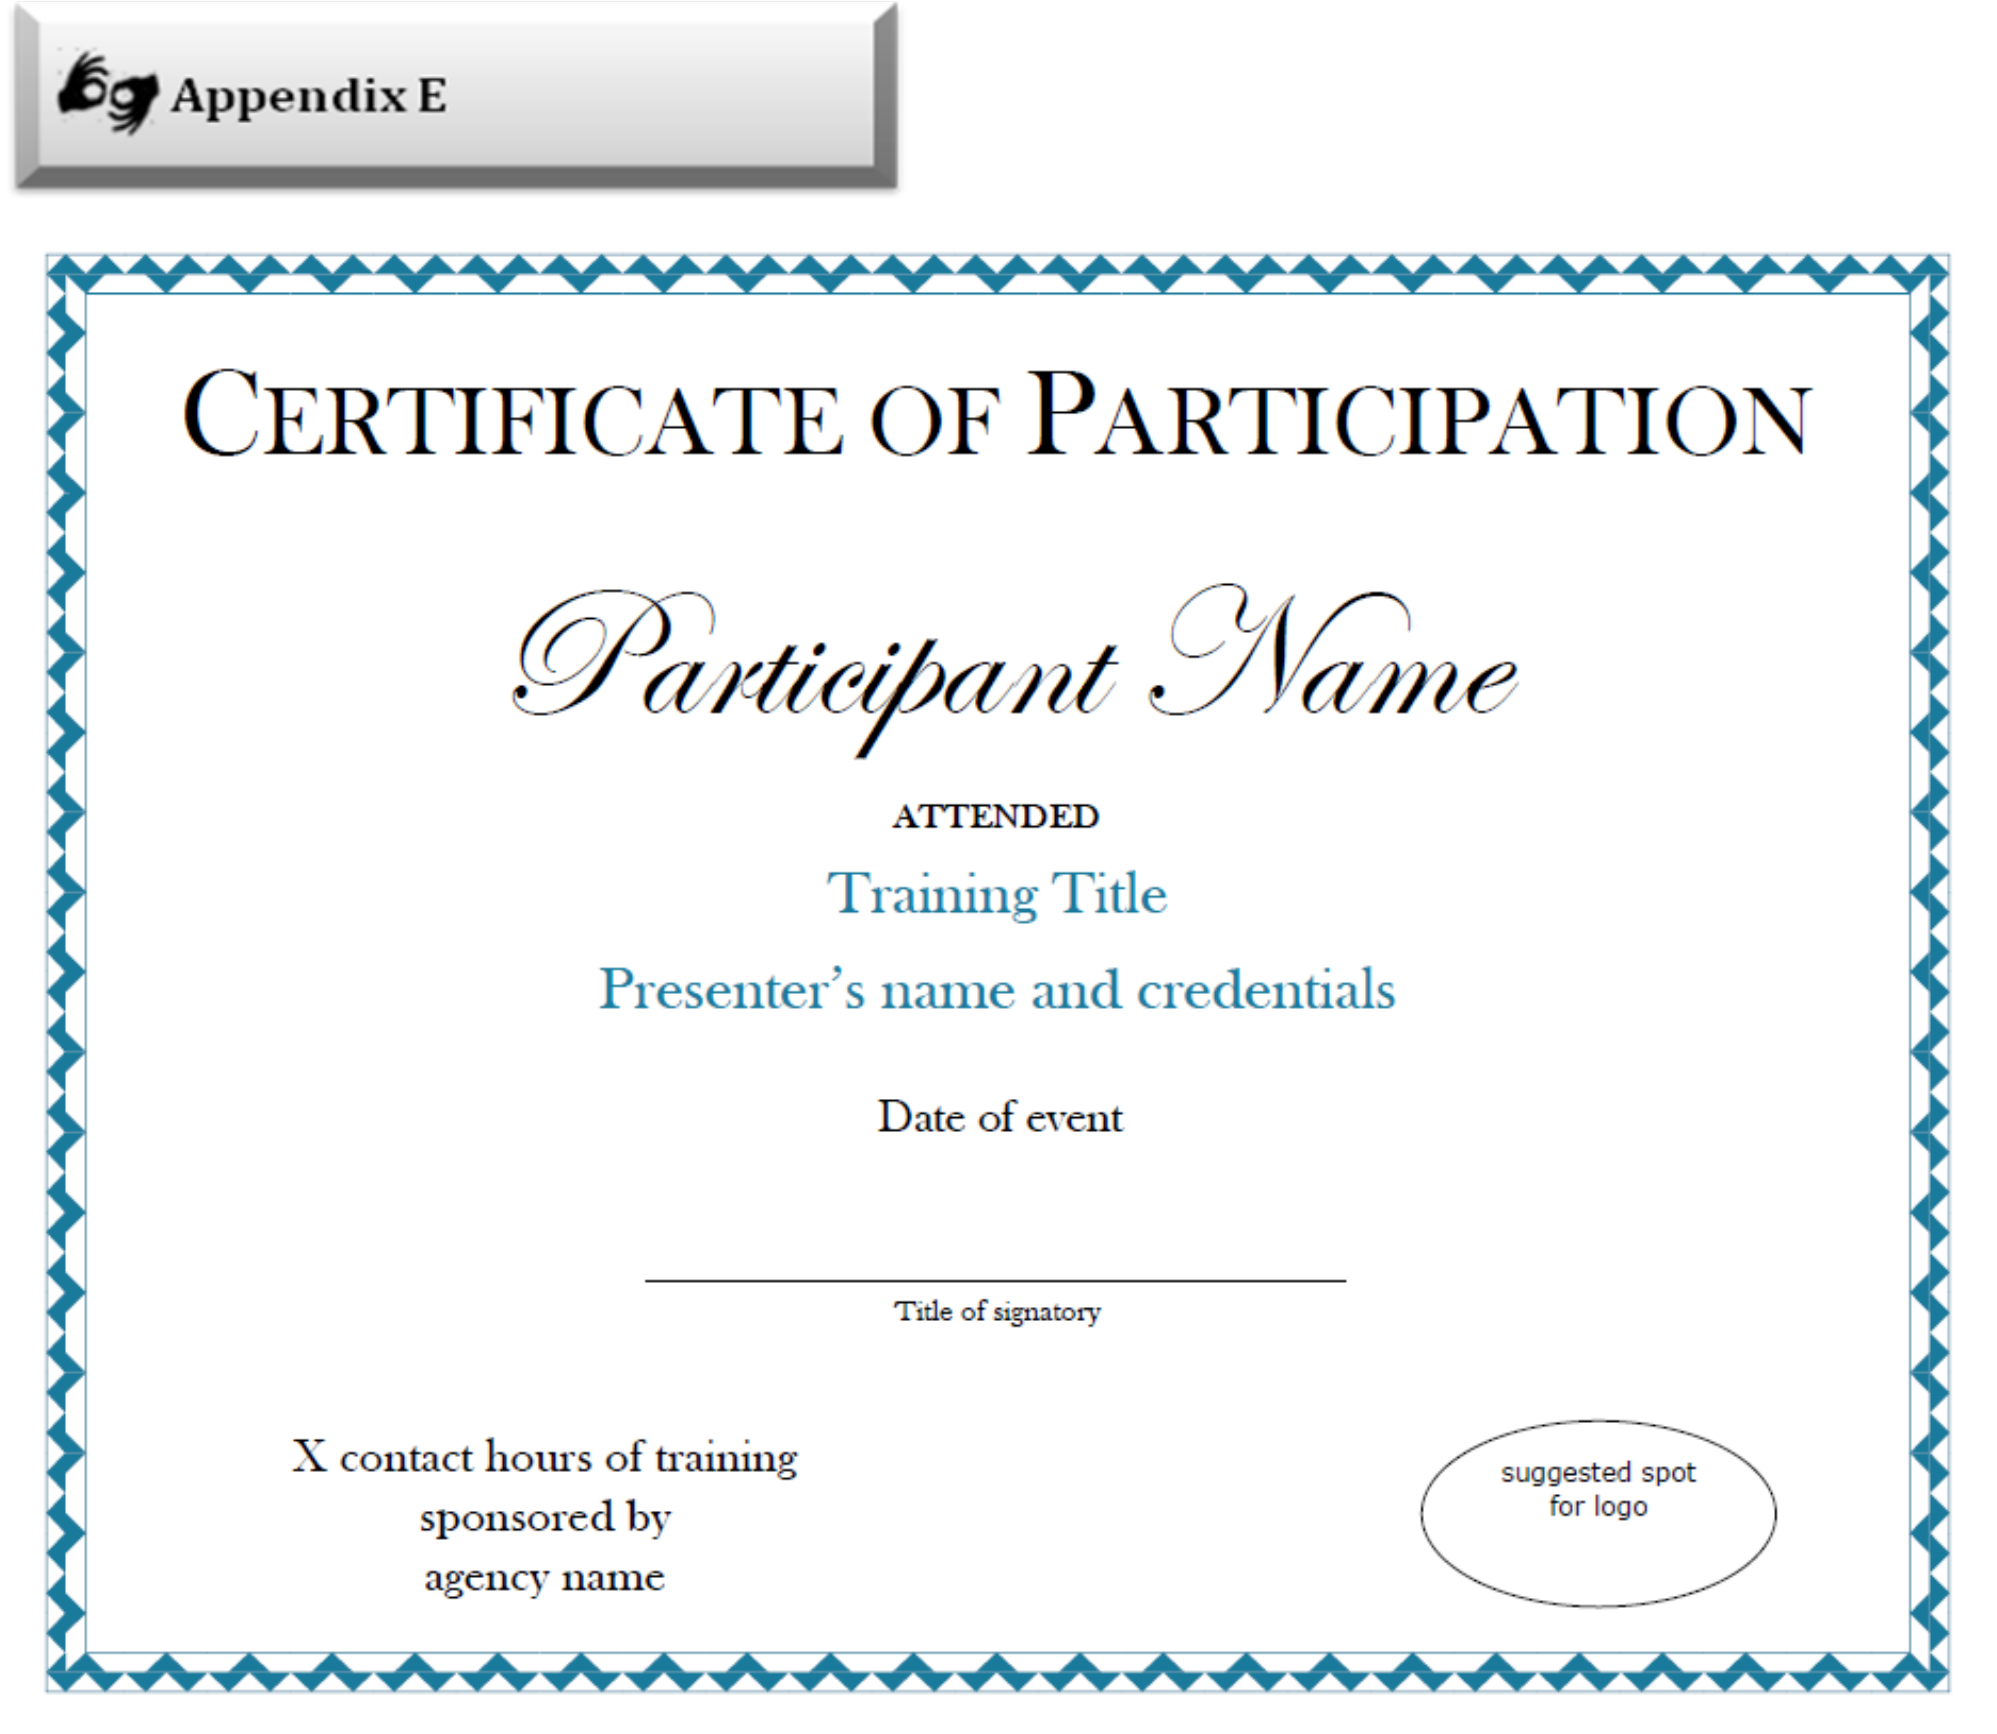 Certificate of participation sample free download for Training certificate template free